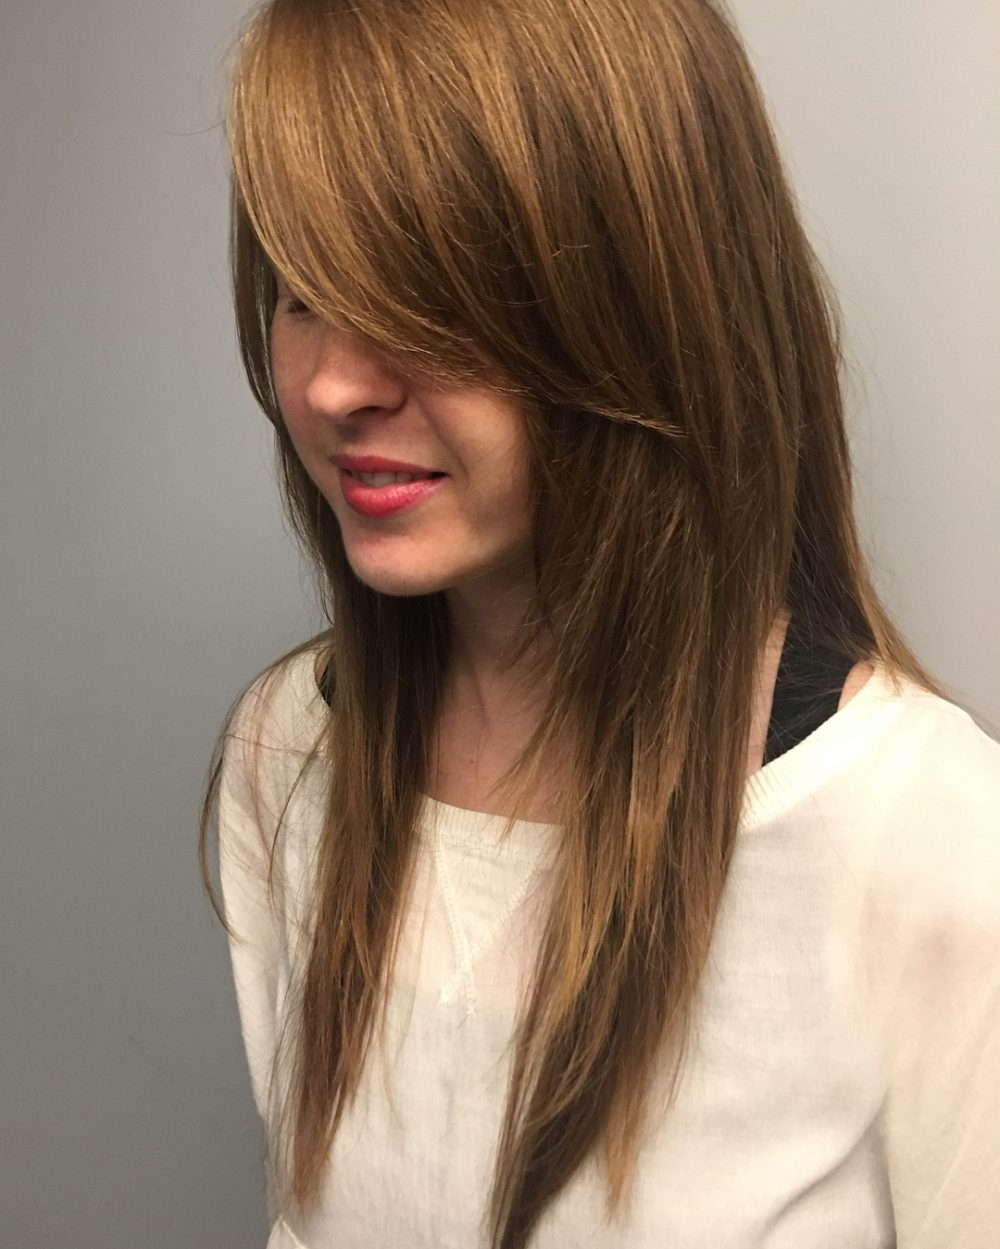 Long Shag Haircuts: 36 Examples For 2019 With Layered Waves Shag Haircuts (View 17 of 20)